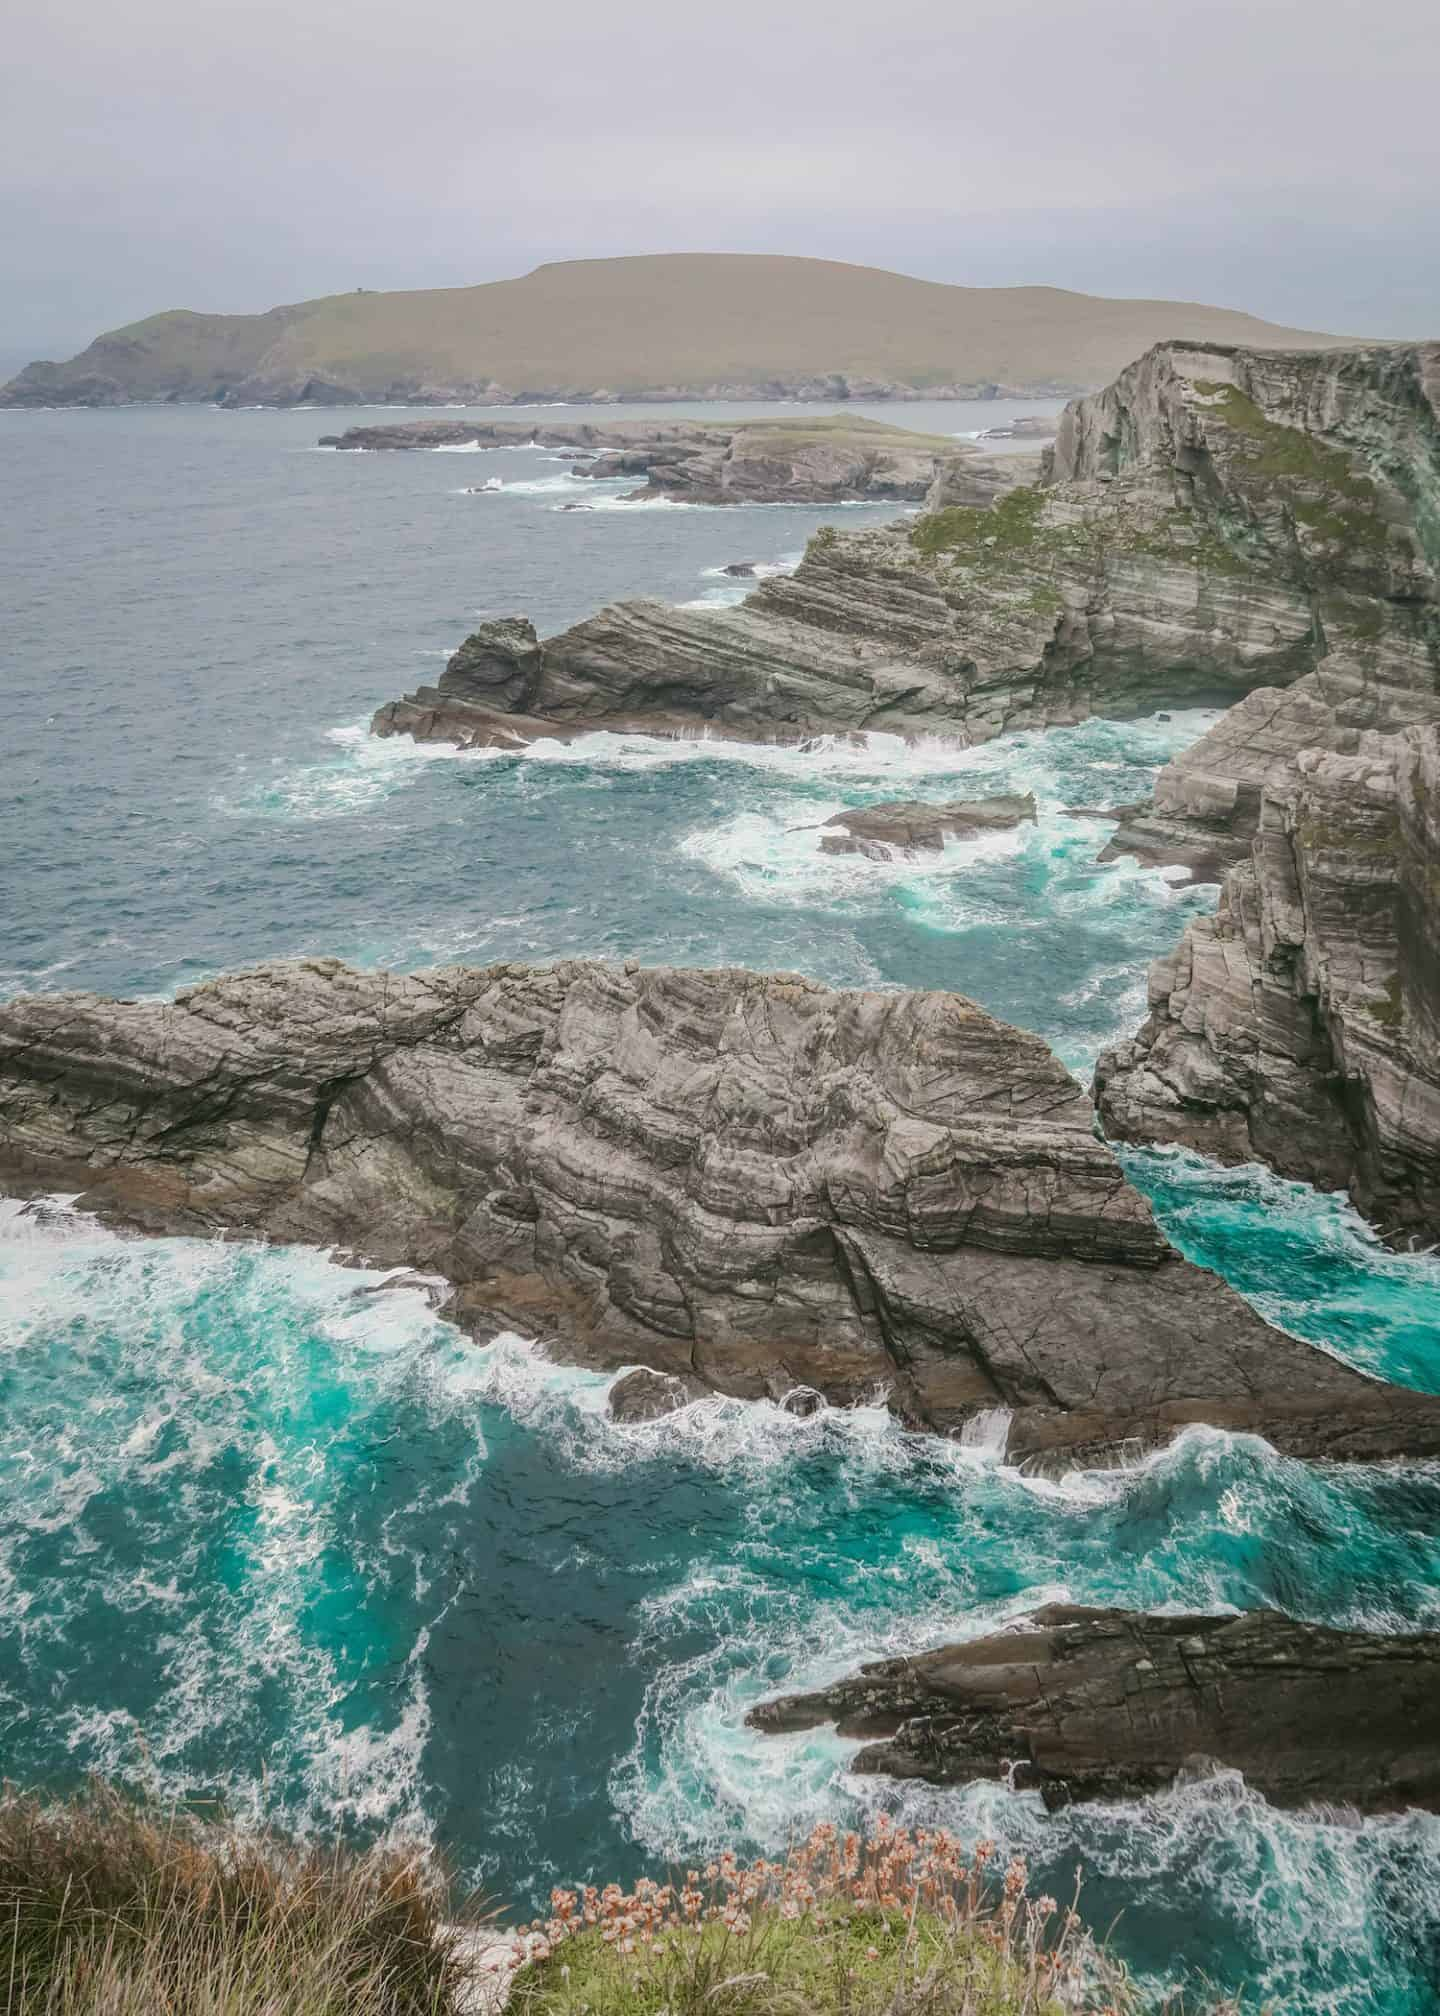 Kerry Cliffs is worth a stop along the Ring of Kerry drive during your Ireland road trip itinerary